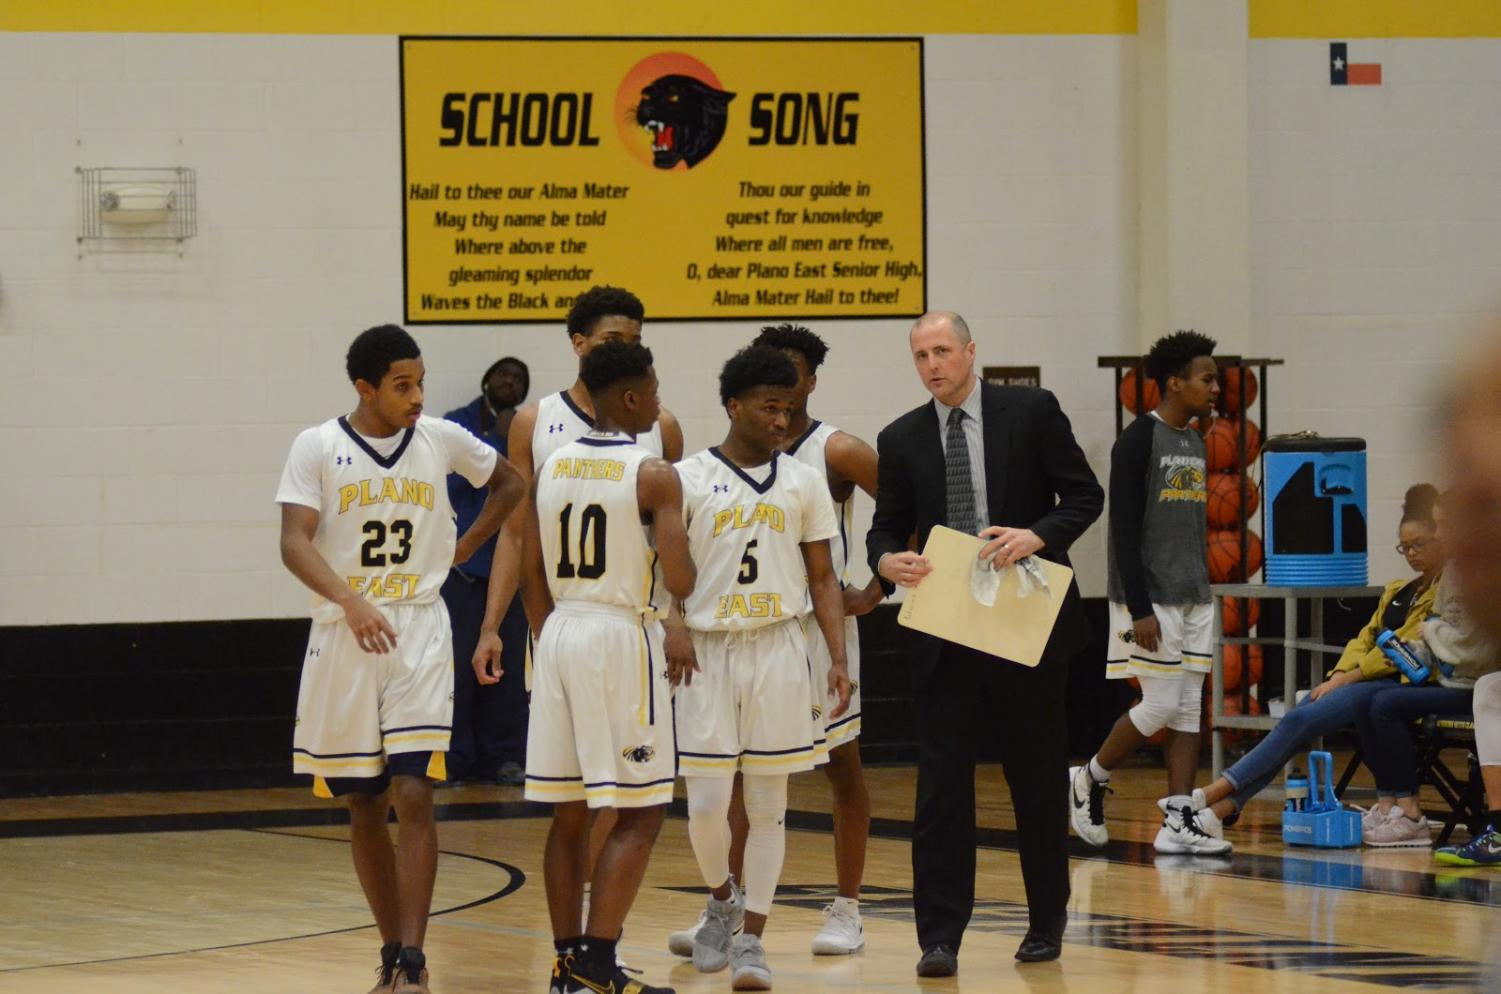 """I think everything's contagious, so if you work hard, and you preach hard work, then the students or players notice that and it rubs off on them, and that's what you hope as a coach,"" Popplewell said."